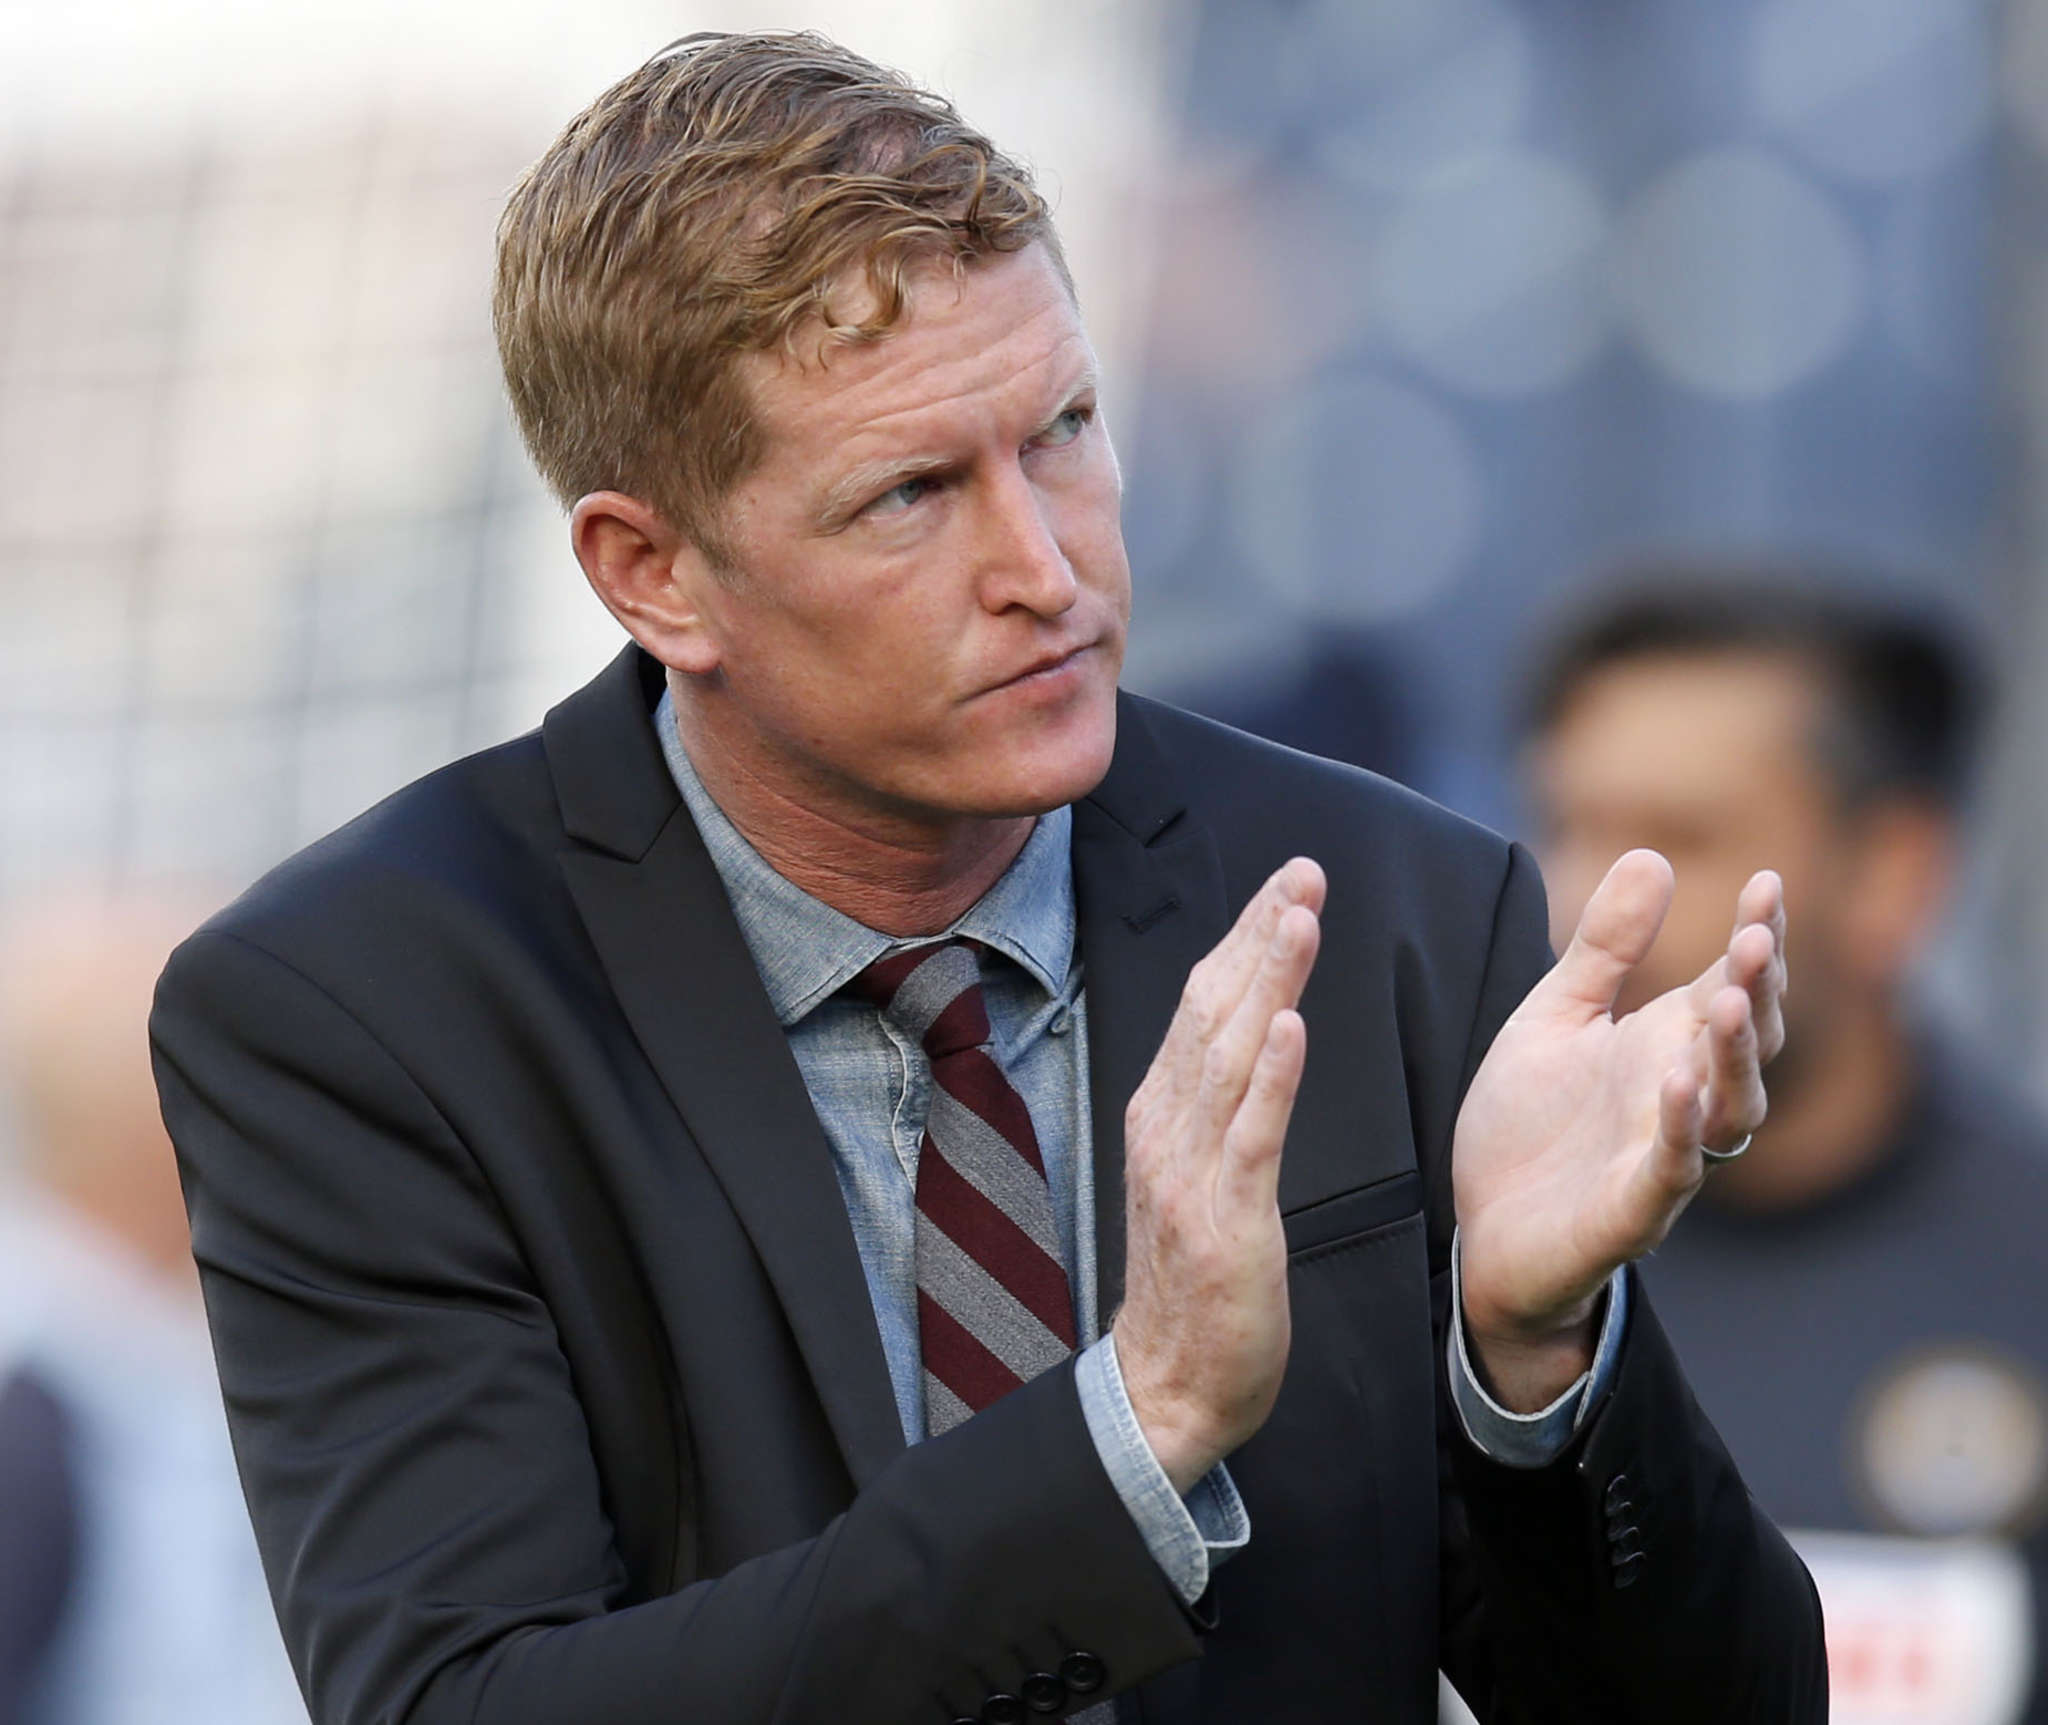 Union coach Jim Curtin has worked to instill a winning culture in his locker room this season.